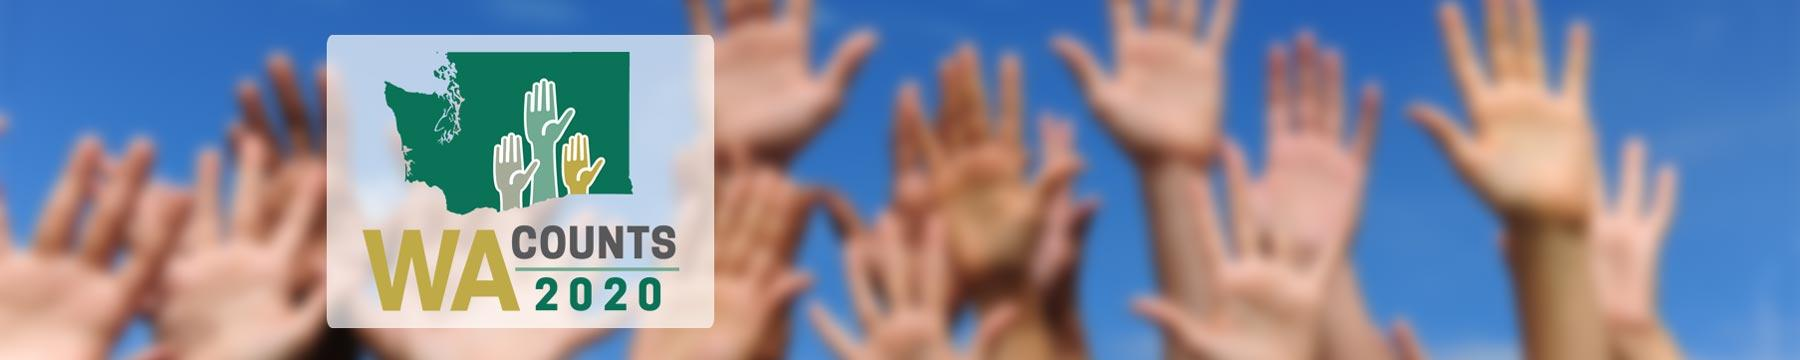 "Logo reading ""WA Counts 2020"" over an image of hands stretched high in the air"